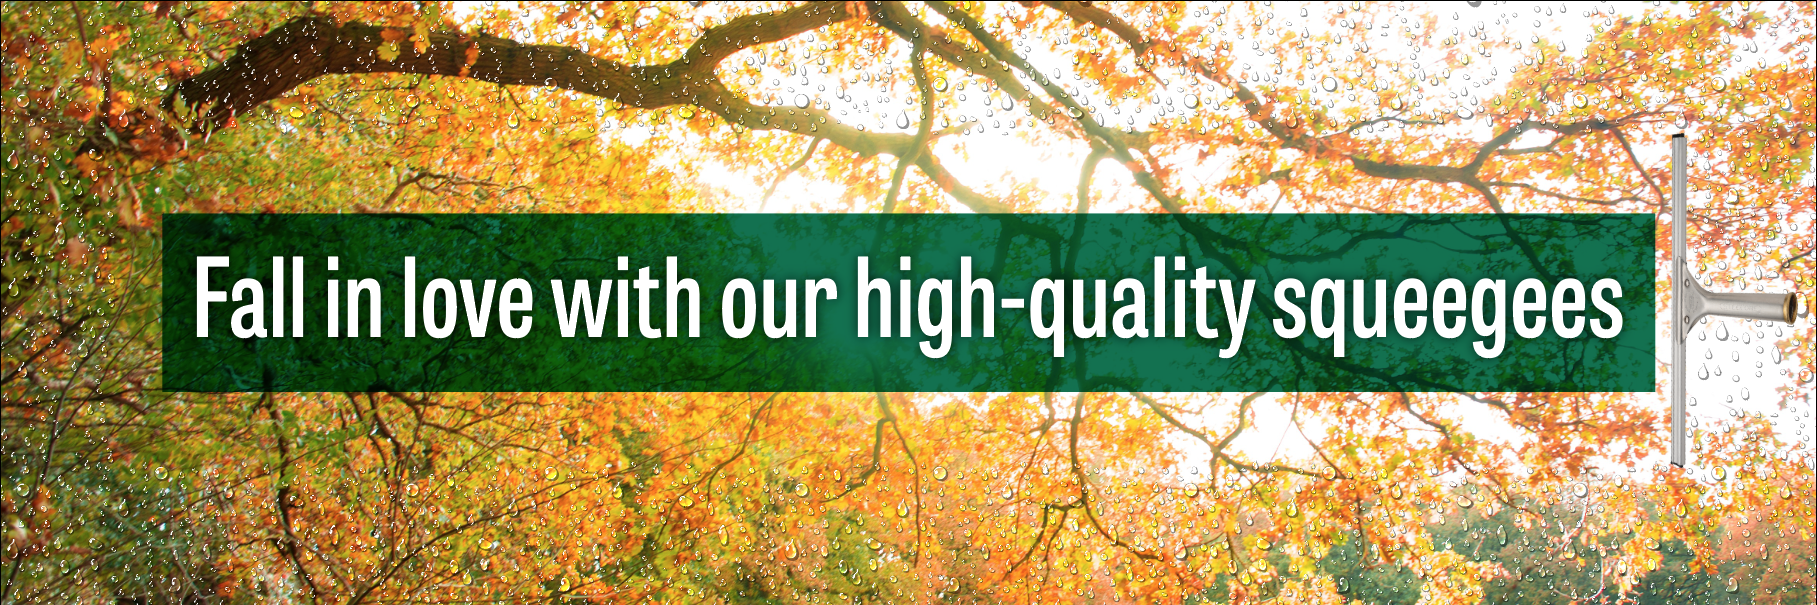 Fall in love with our high-quality squeegees